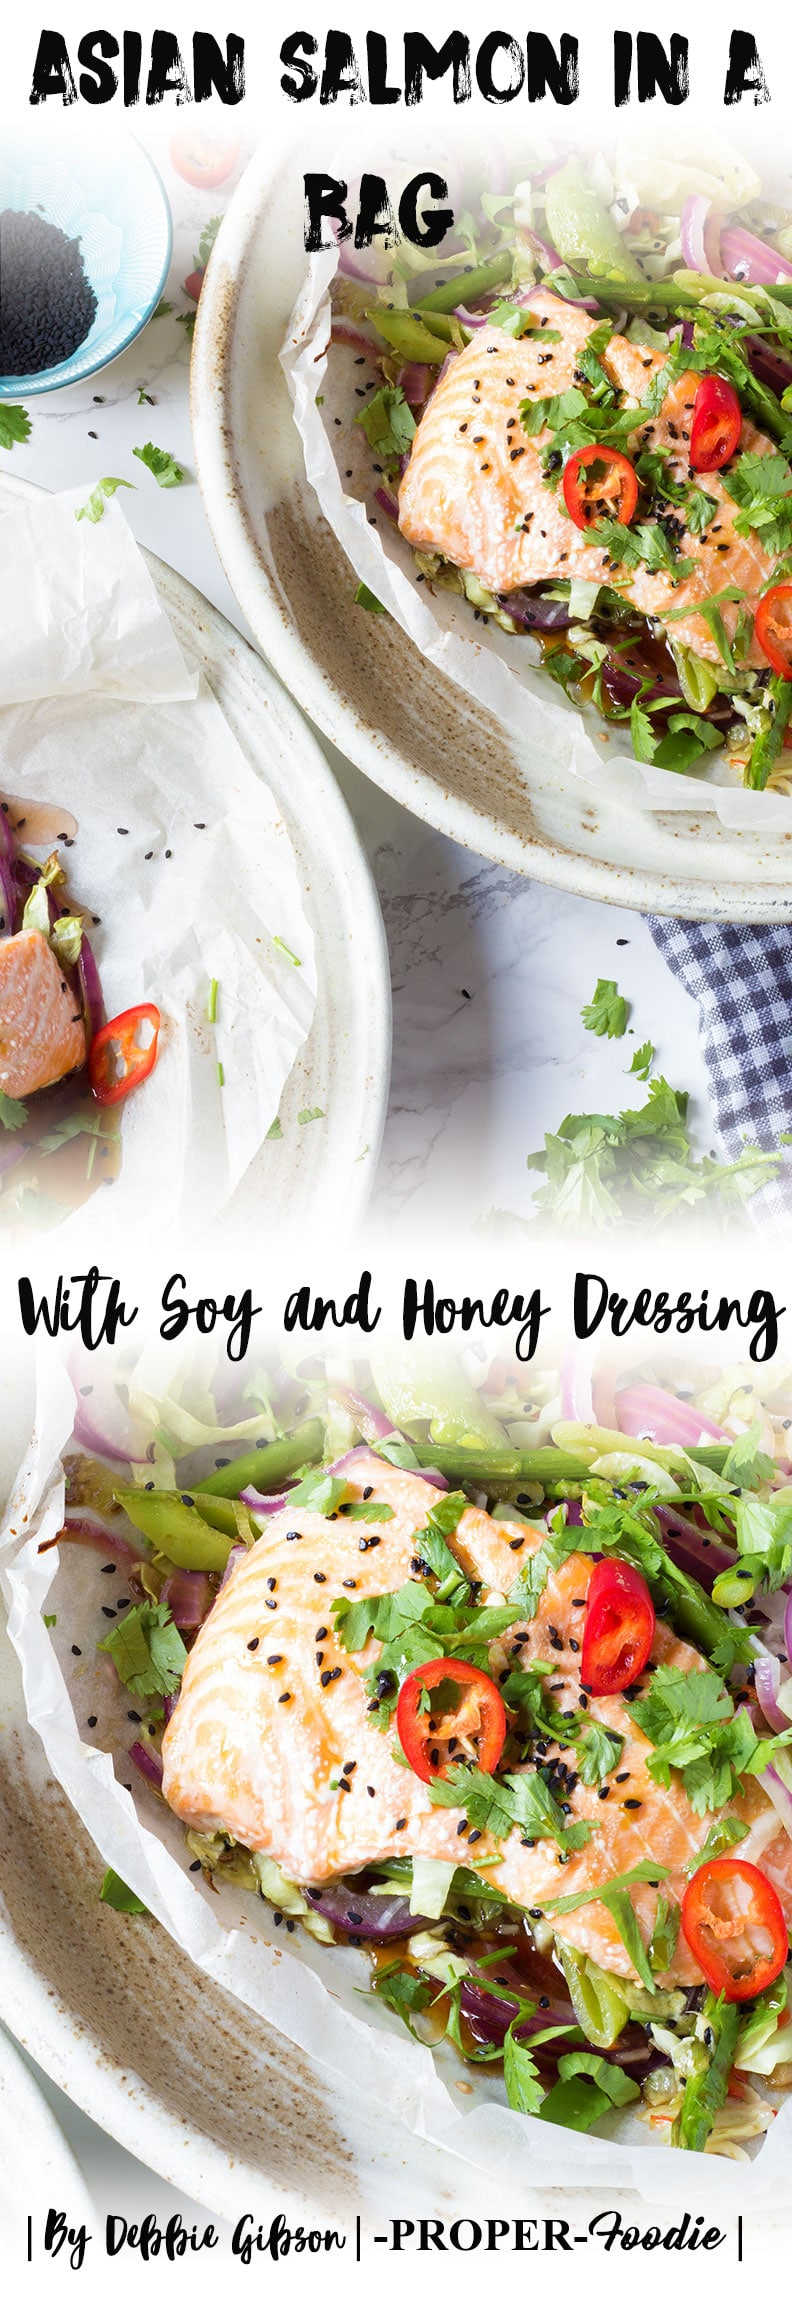 Asian salmon in a bag with soy and honey dressing